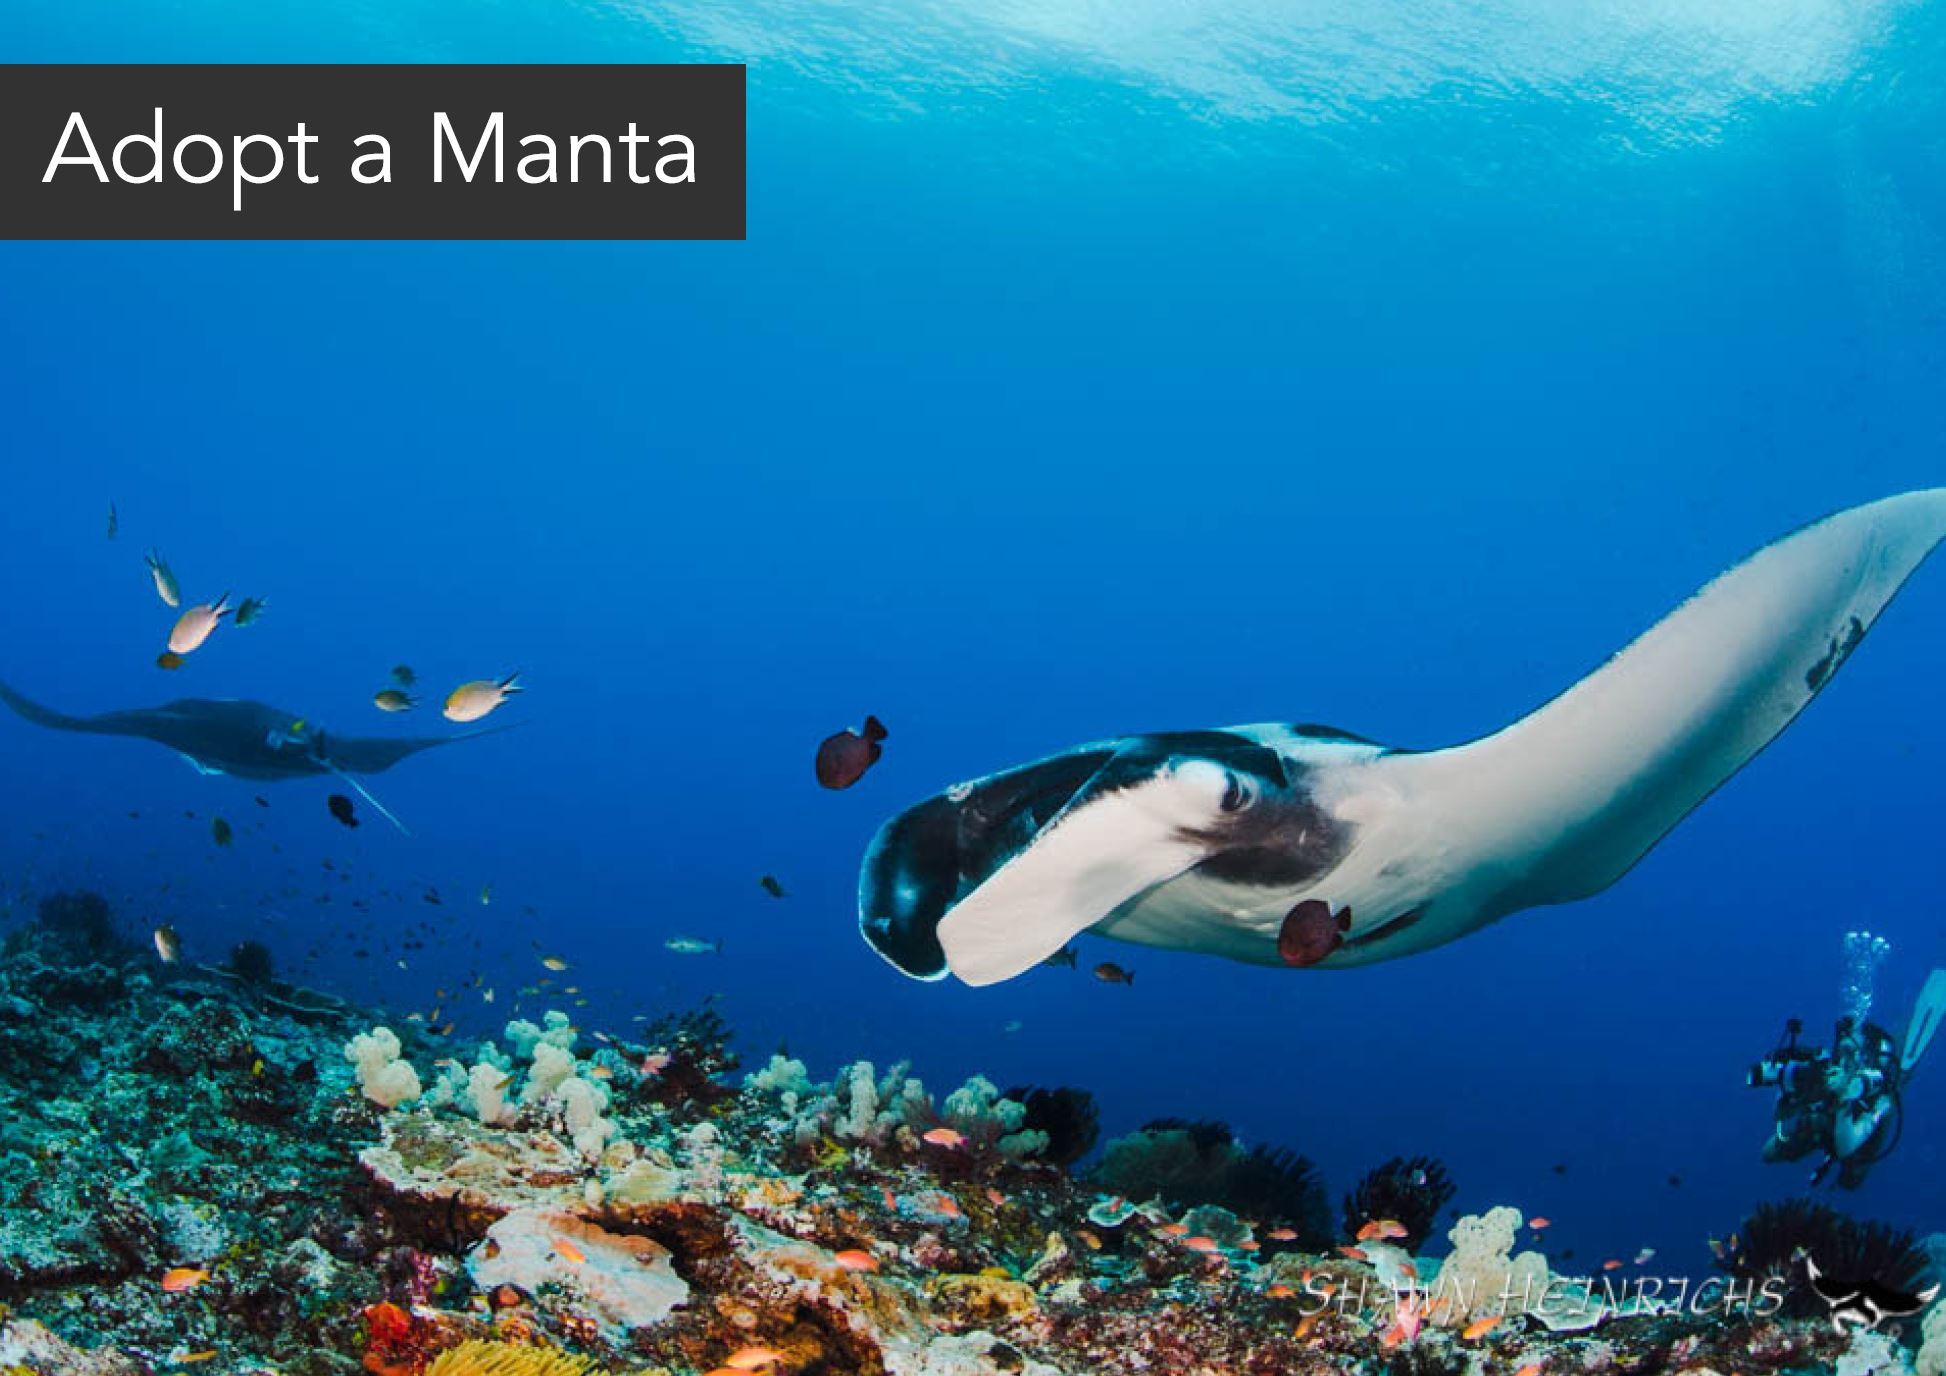 Adopt a manta - Adopting a manta is a great way to support the Misool Manta Project which carries out critical scientific research into the manta populations of Misool.It's super simple. Make a donation of US$200, name your manta and we'll send you a personalised certificate and updates from our team when your manta ray is resighted.To find out more, please send our fundraising team an email using the form below.